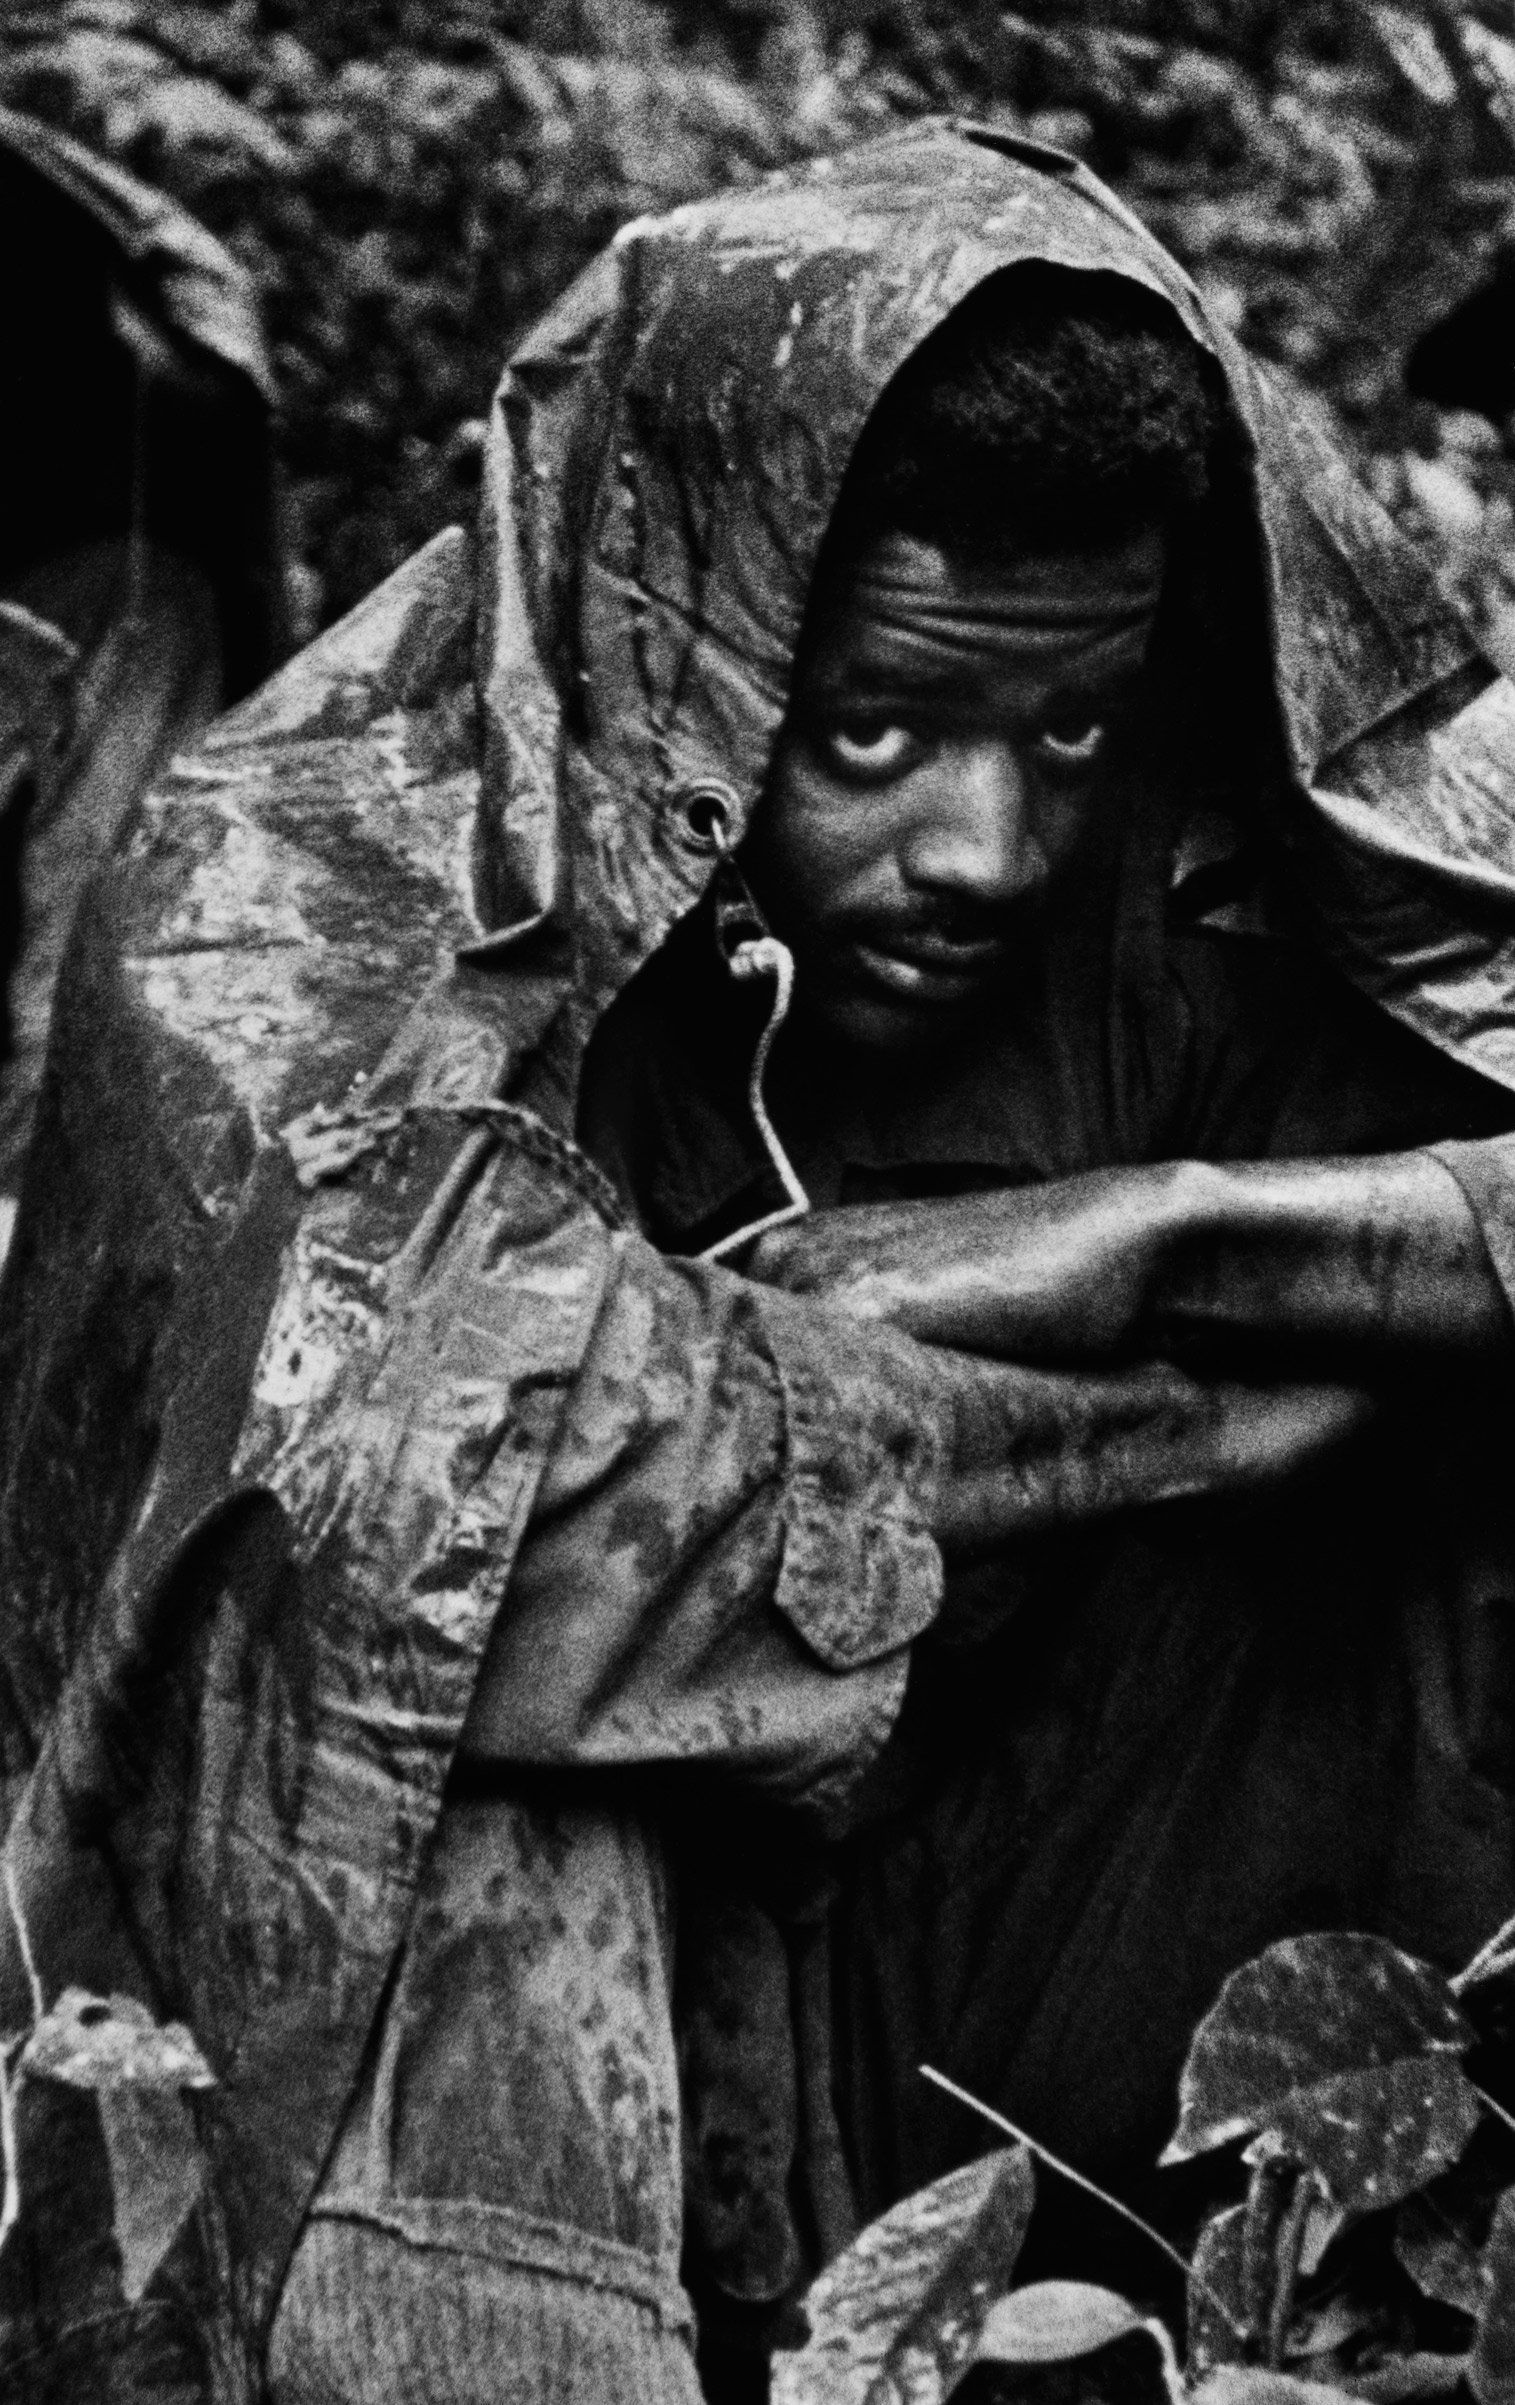 The Vietnam War Pictures That Moved Them Most